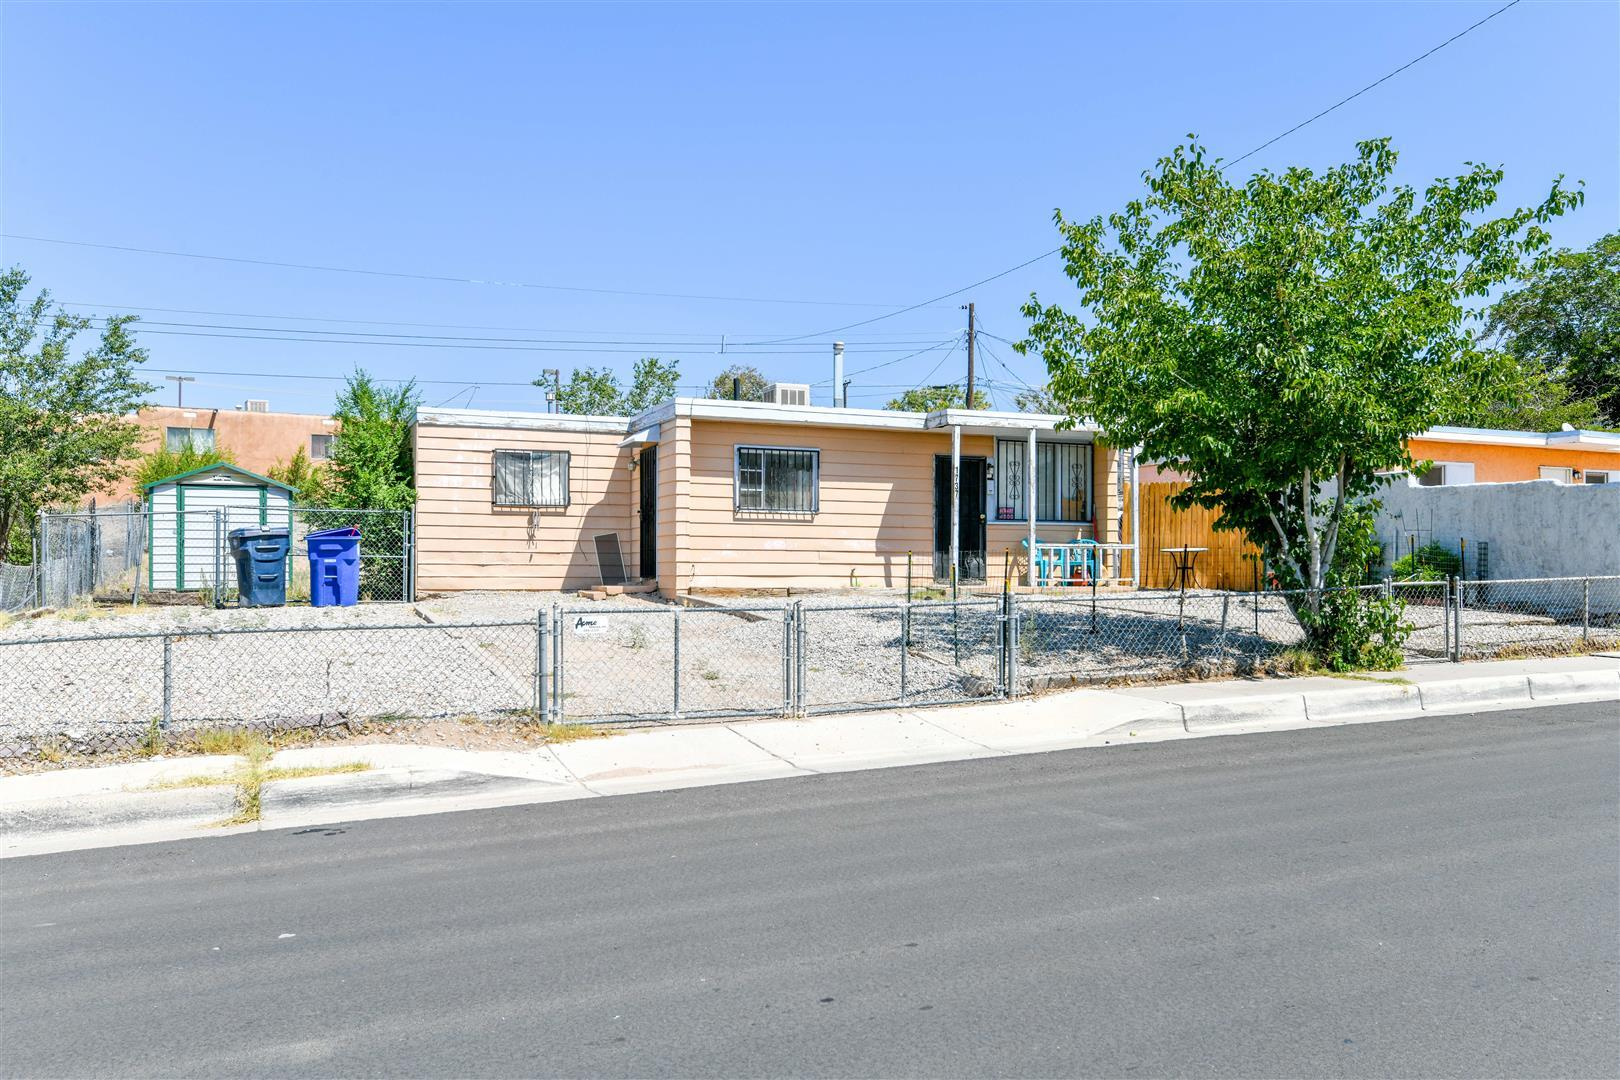 Cute 3 bedroom 1 bath bungalow!  Light and bright!  Property is fully fenced. Seller asserts the roof was replaced 2010 and mastercool evaporative cooler in 2019.  Backyard access including gated off street  parking with room enough for several vehicles.  Storage shed stays.  Home Is Here!!